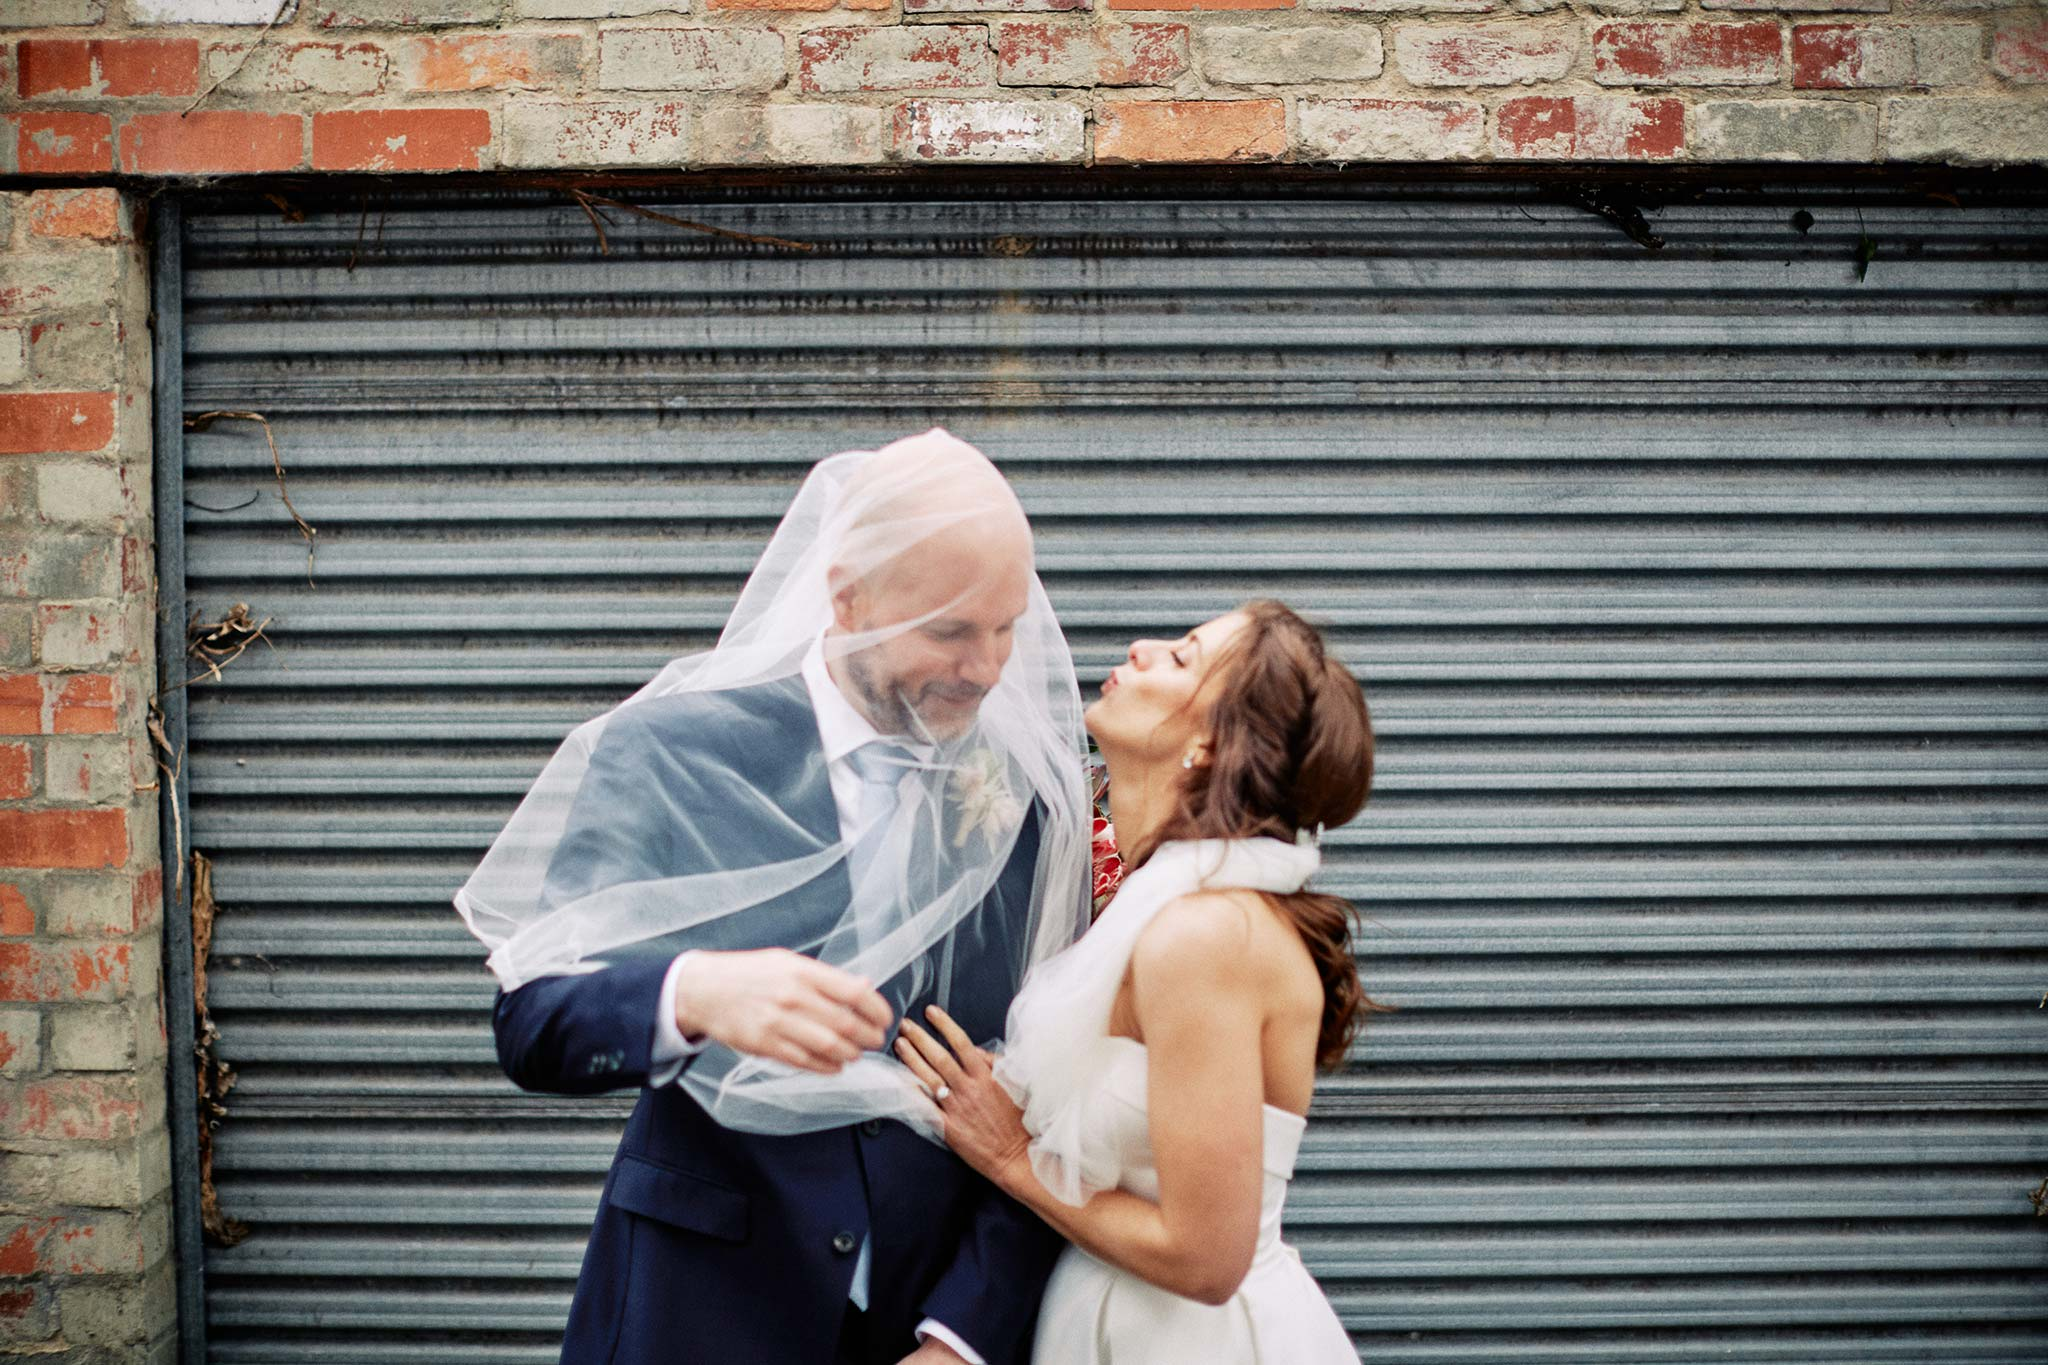 East Melbourne Wedding Photographer Bride Groom Veil Moment